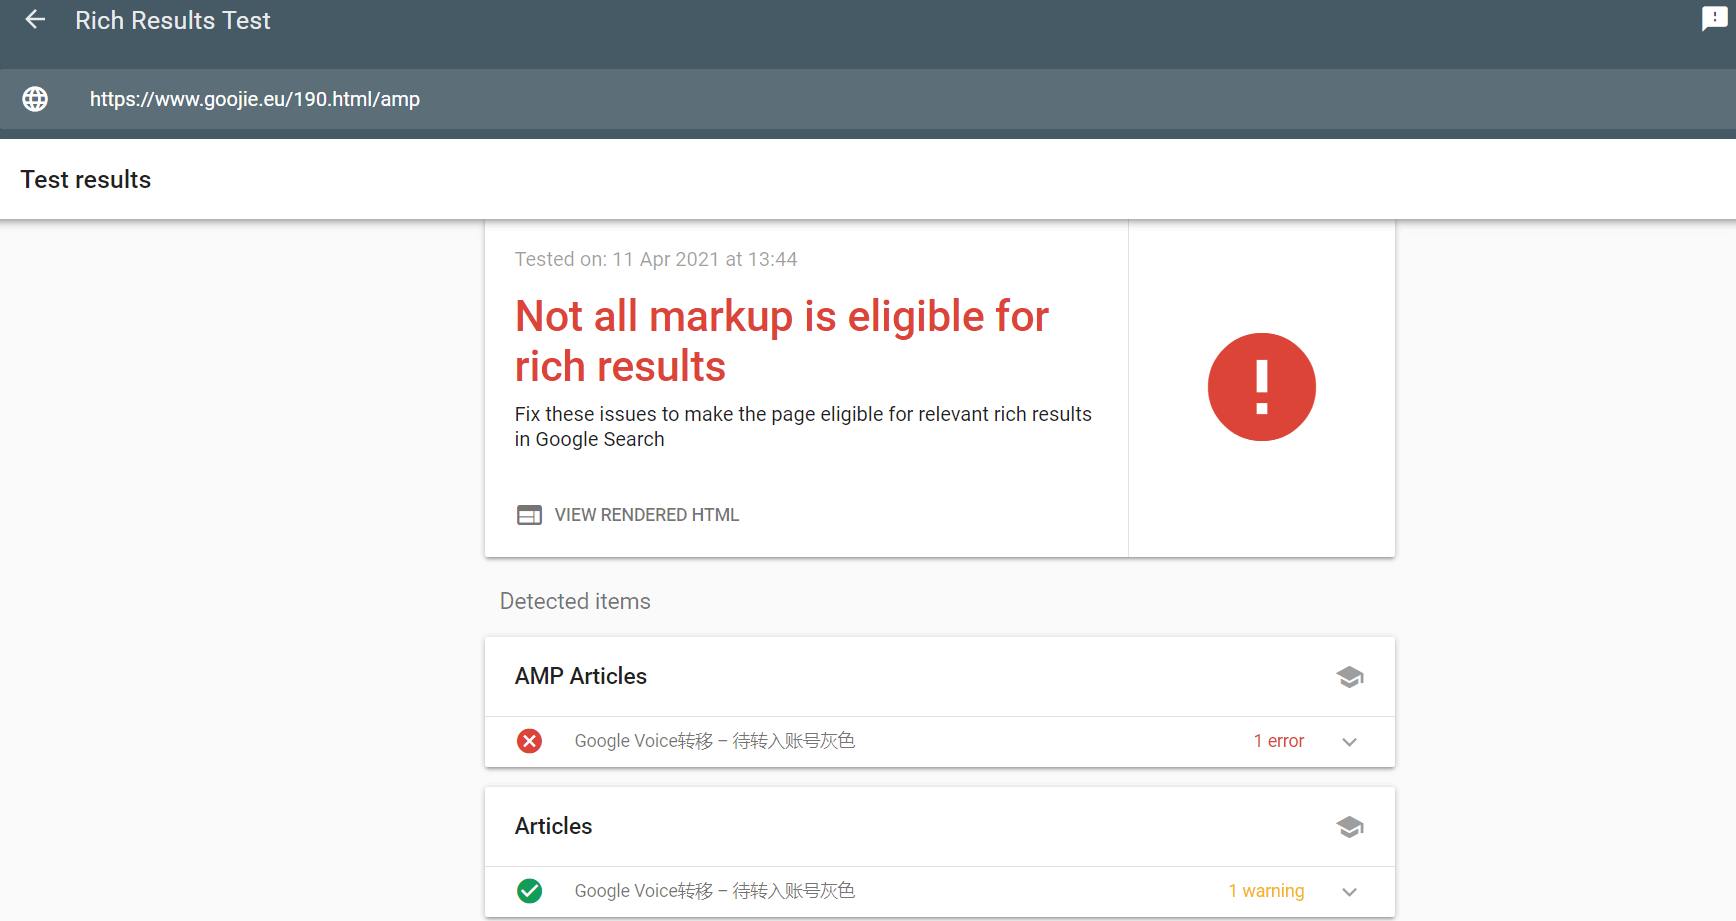 Not all markup is eligible for rich results